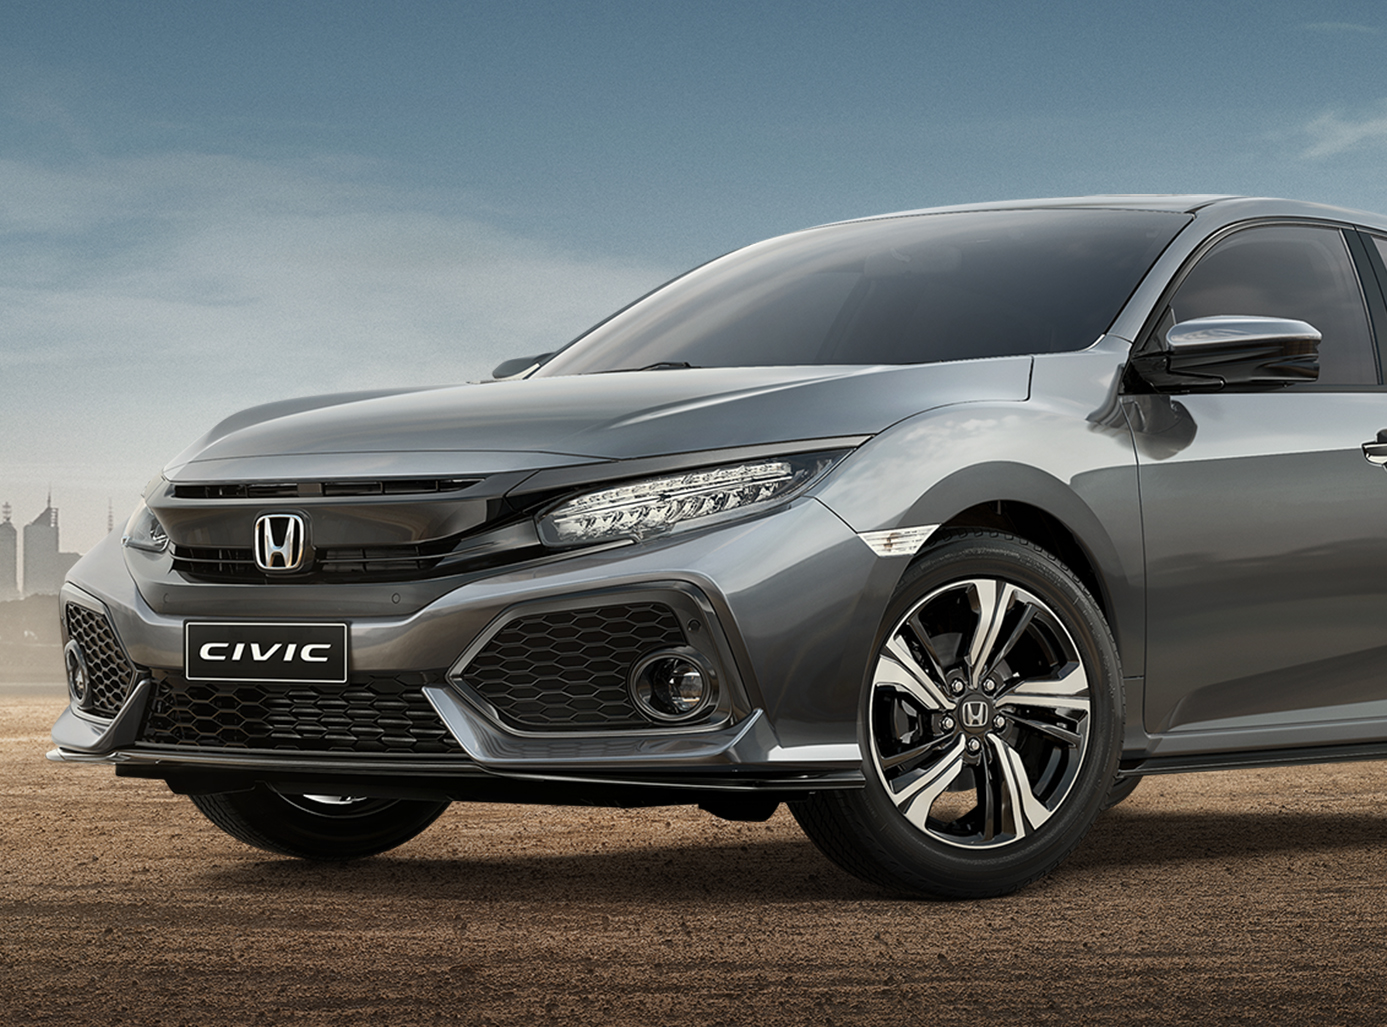 HOD2250_CIVIC_HATCH_HOR_Outdoor_WRGB